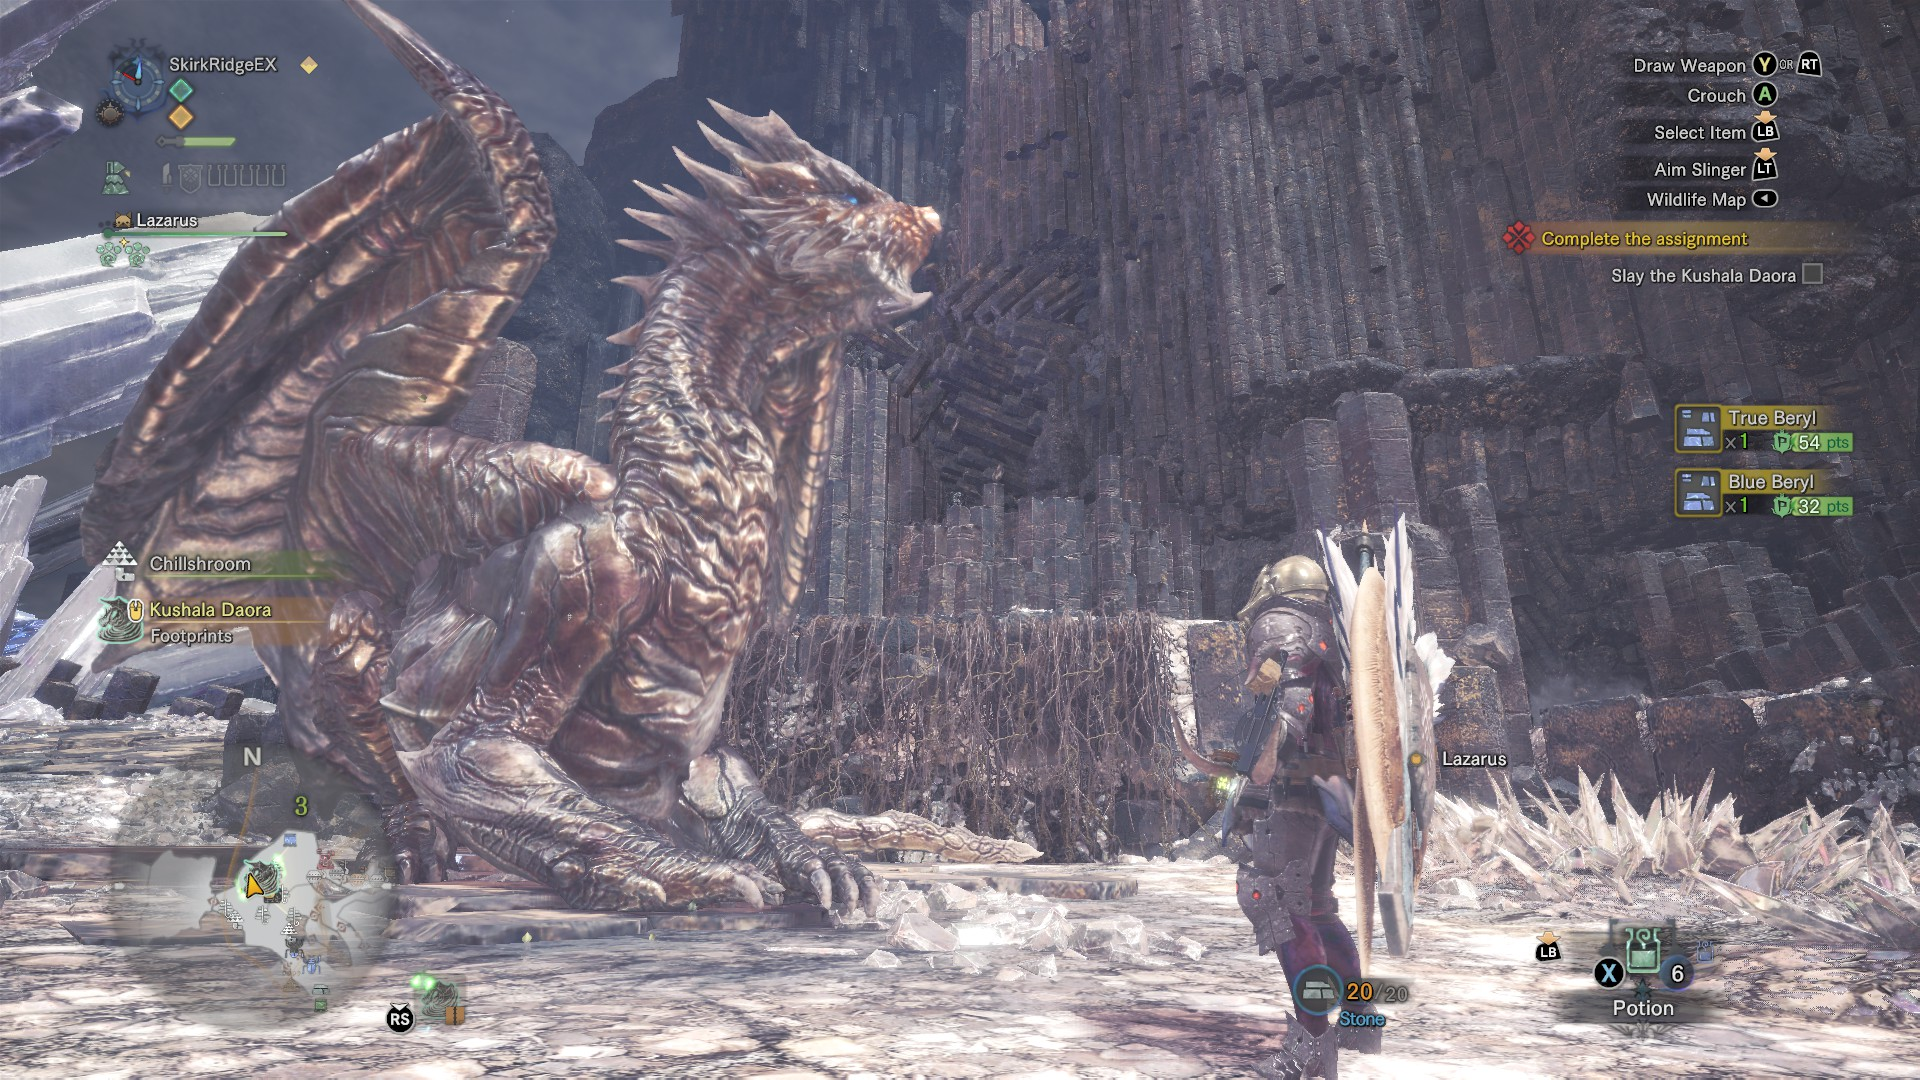 Kushala Daora sits there, waiting patiently for the hunter to attack.